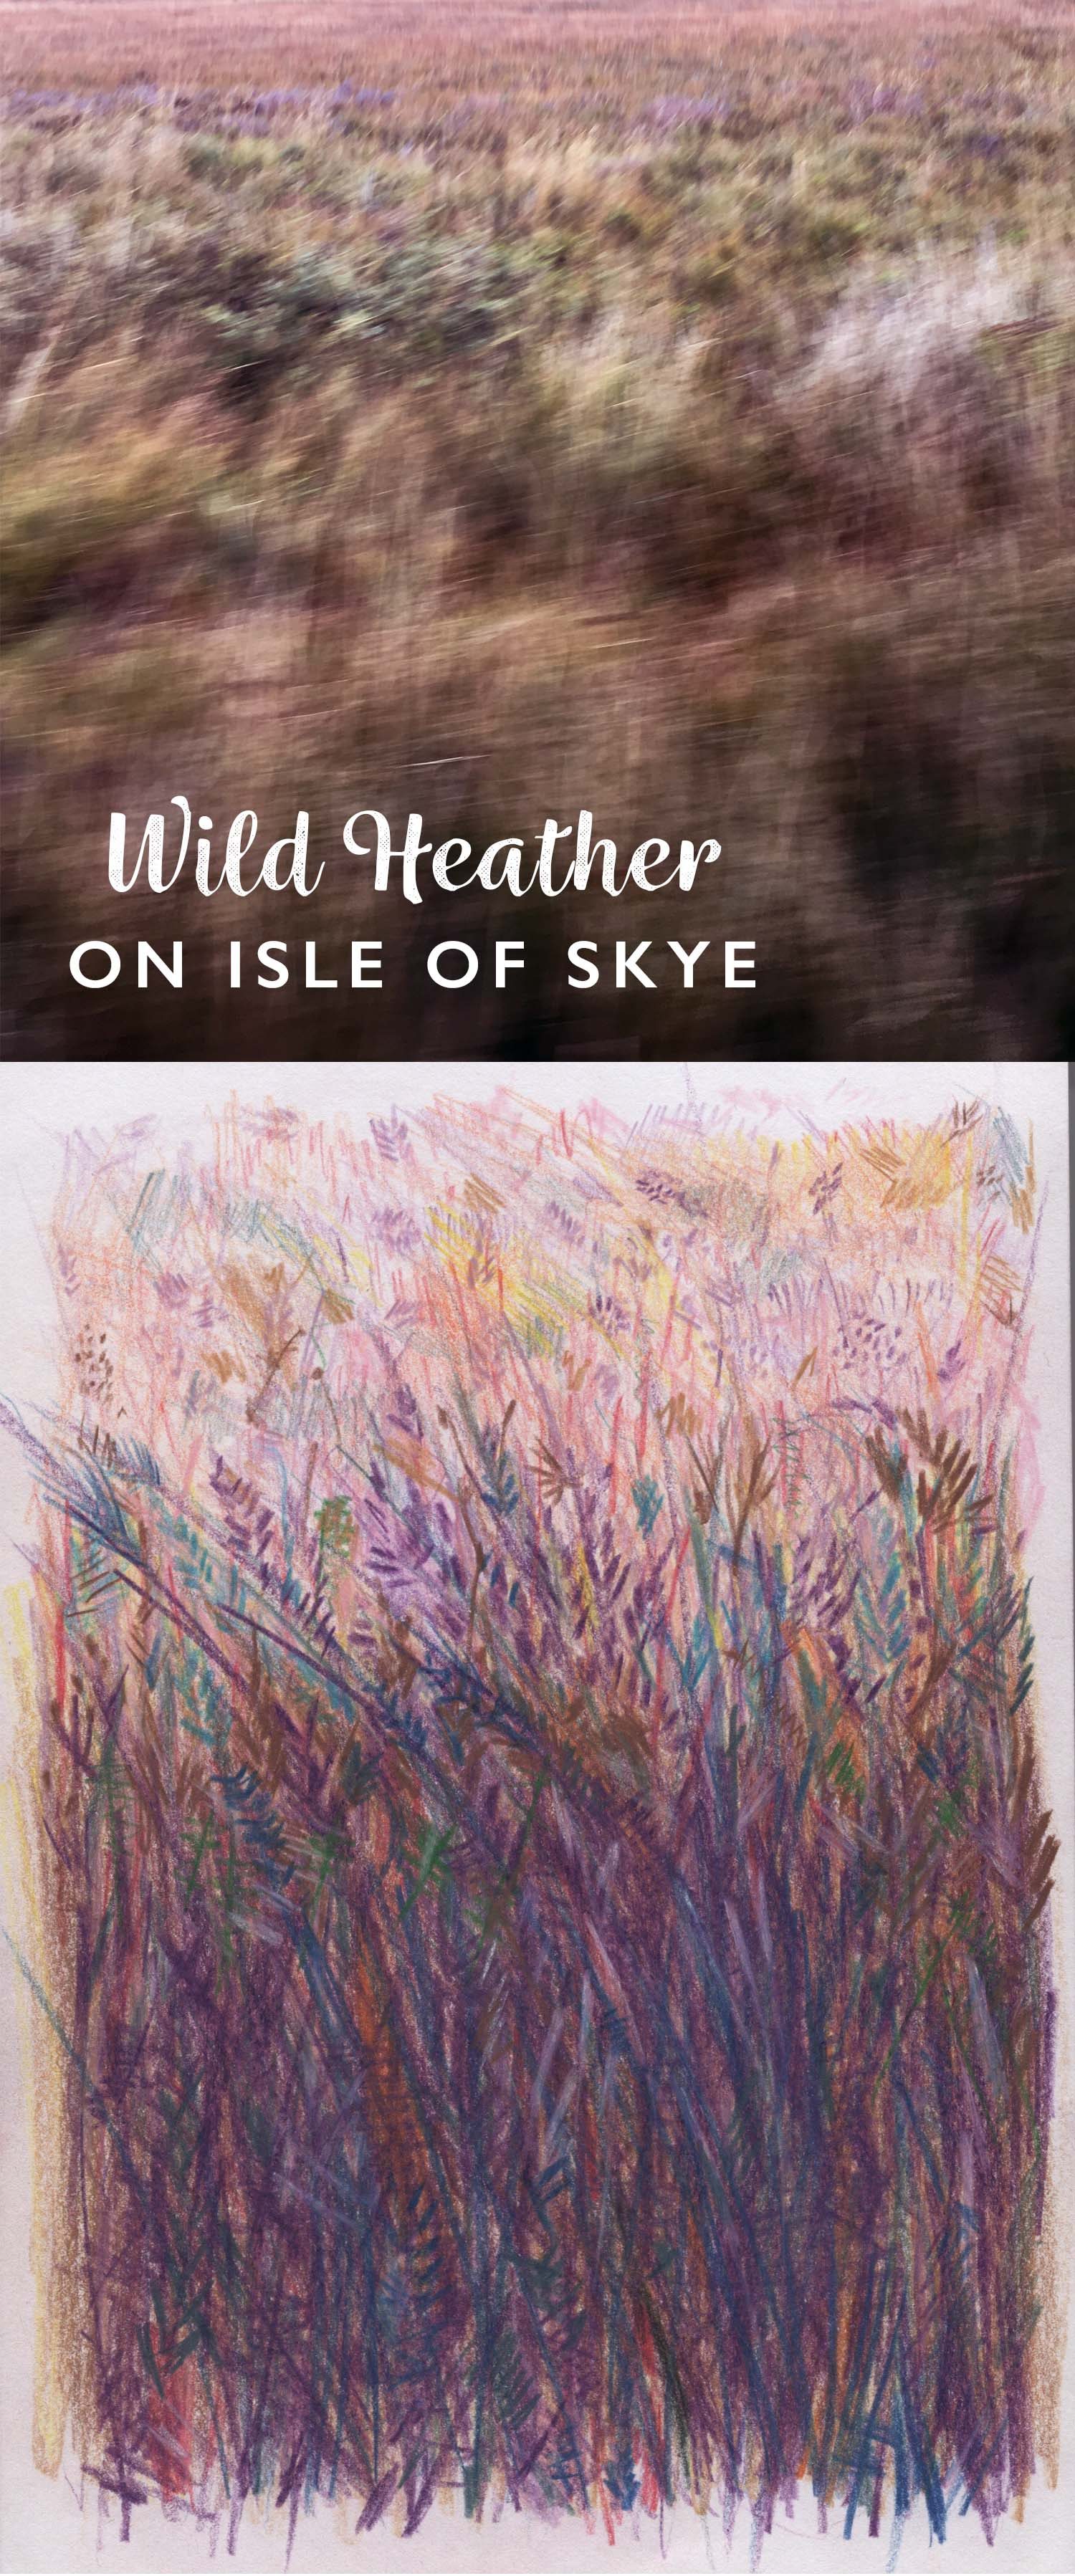 Wild heather illustration in Isle of Skye